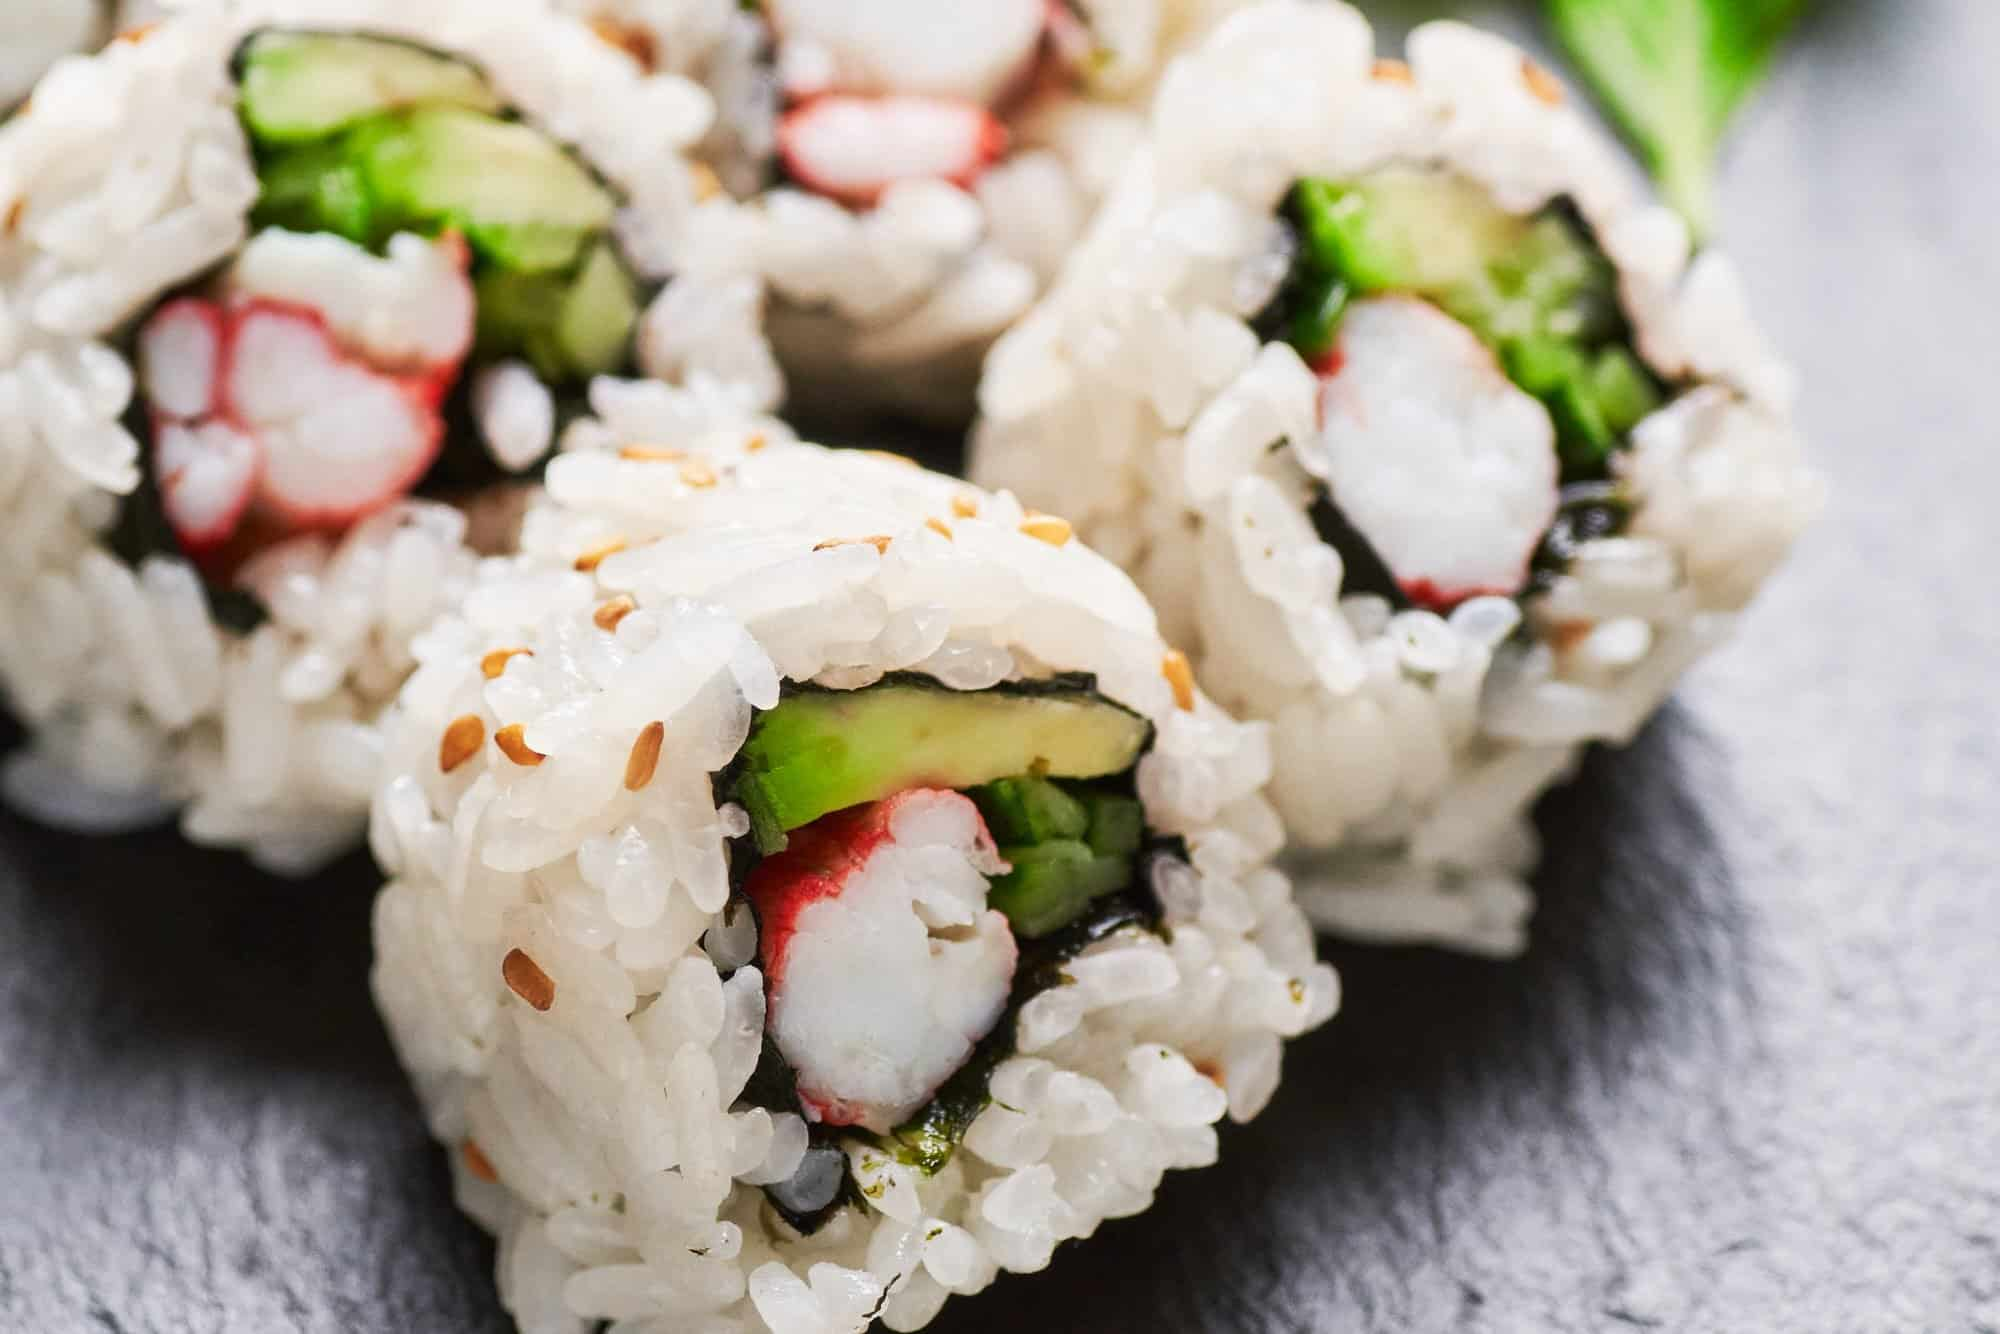 With creamy avocado and flavorful king crab, this California Roll recipe is easy and delicious!